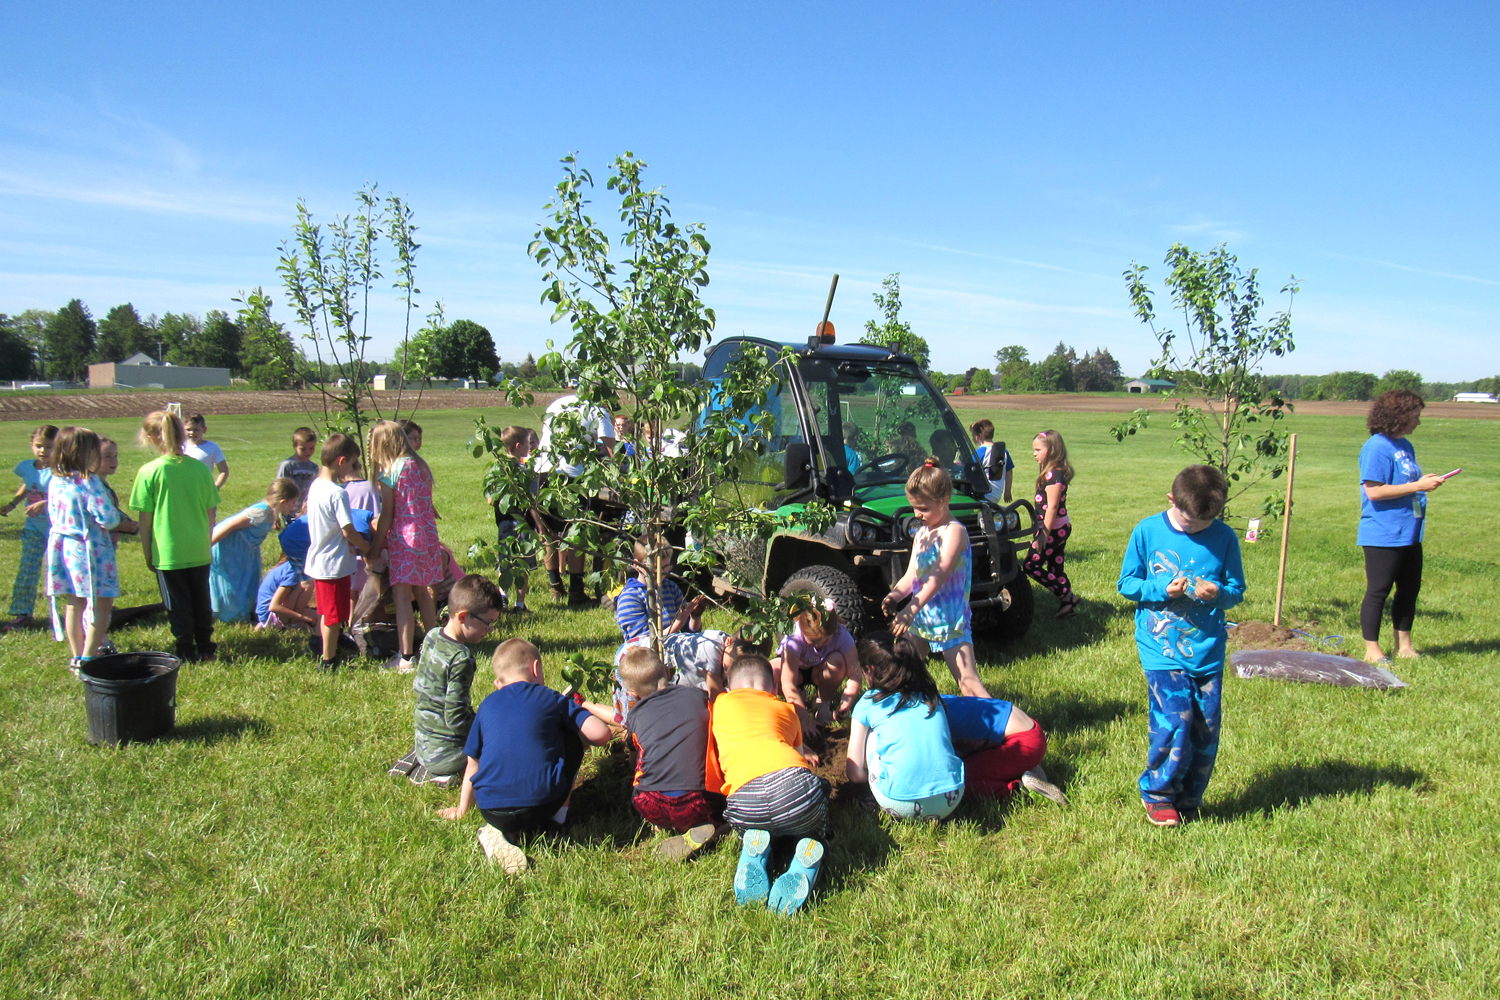 Kendall Elementary students work with school staff and administrators to plant a school orchard on Friday, June 7. Sara's Garden Center in Brockport donated the six fruit trees.